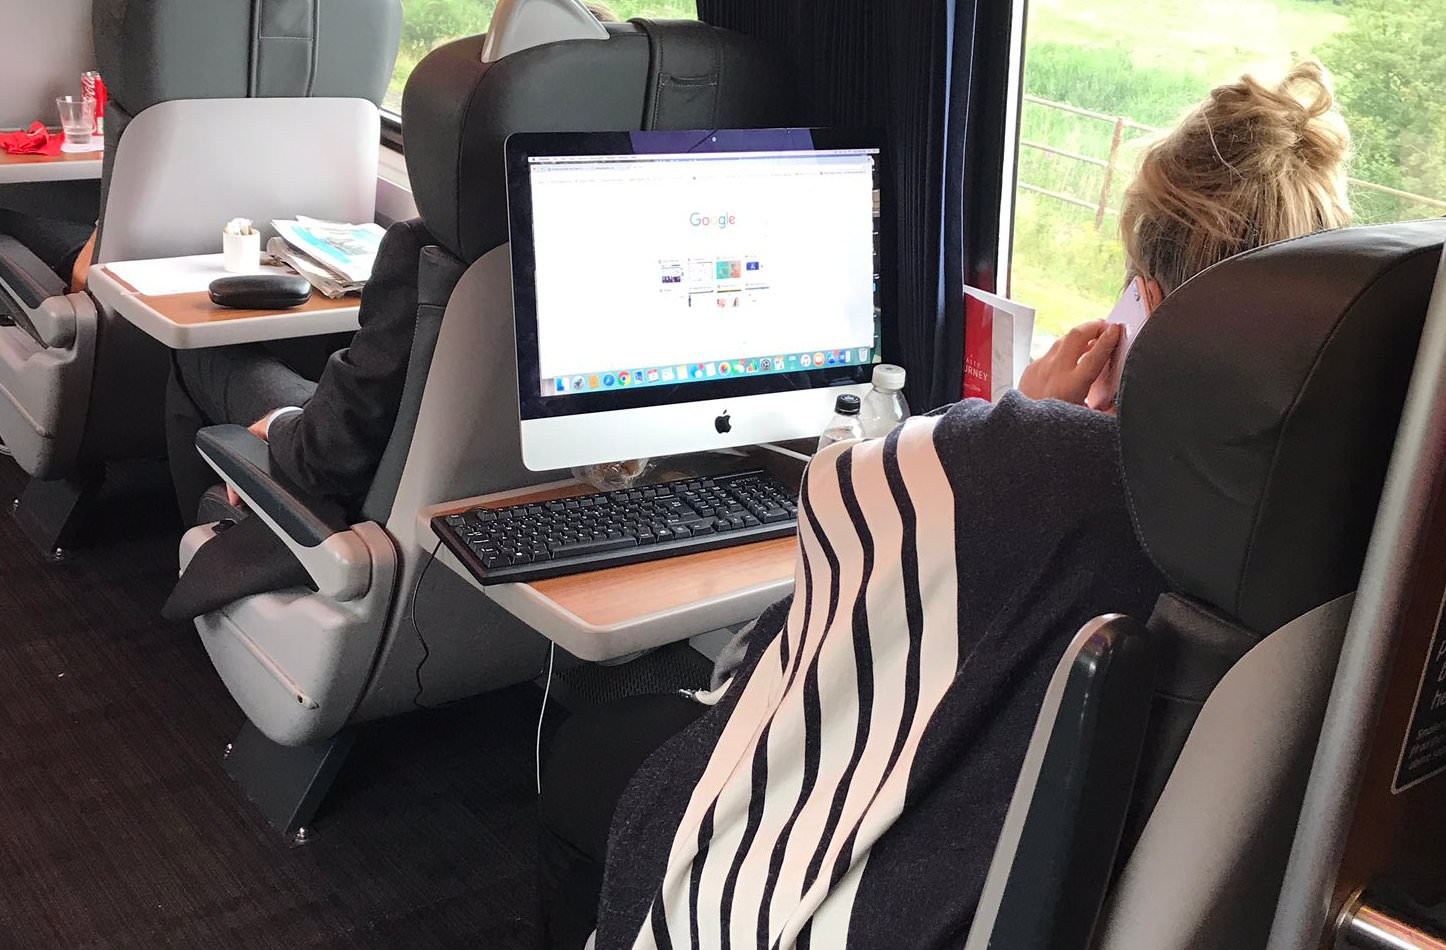 Using iMac on a Train